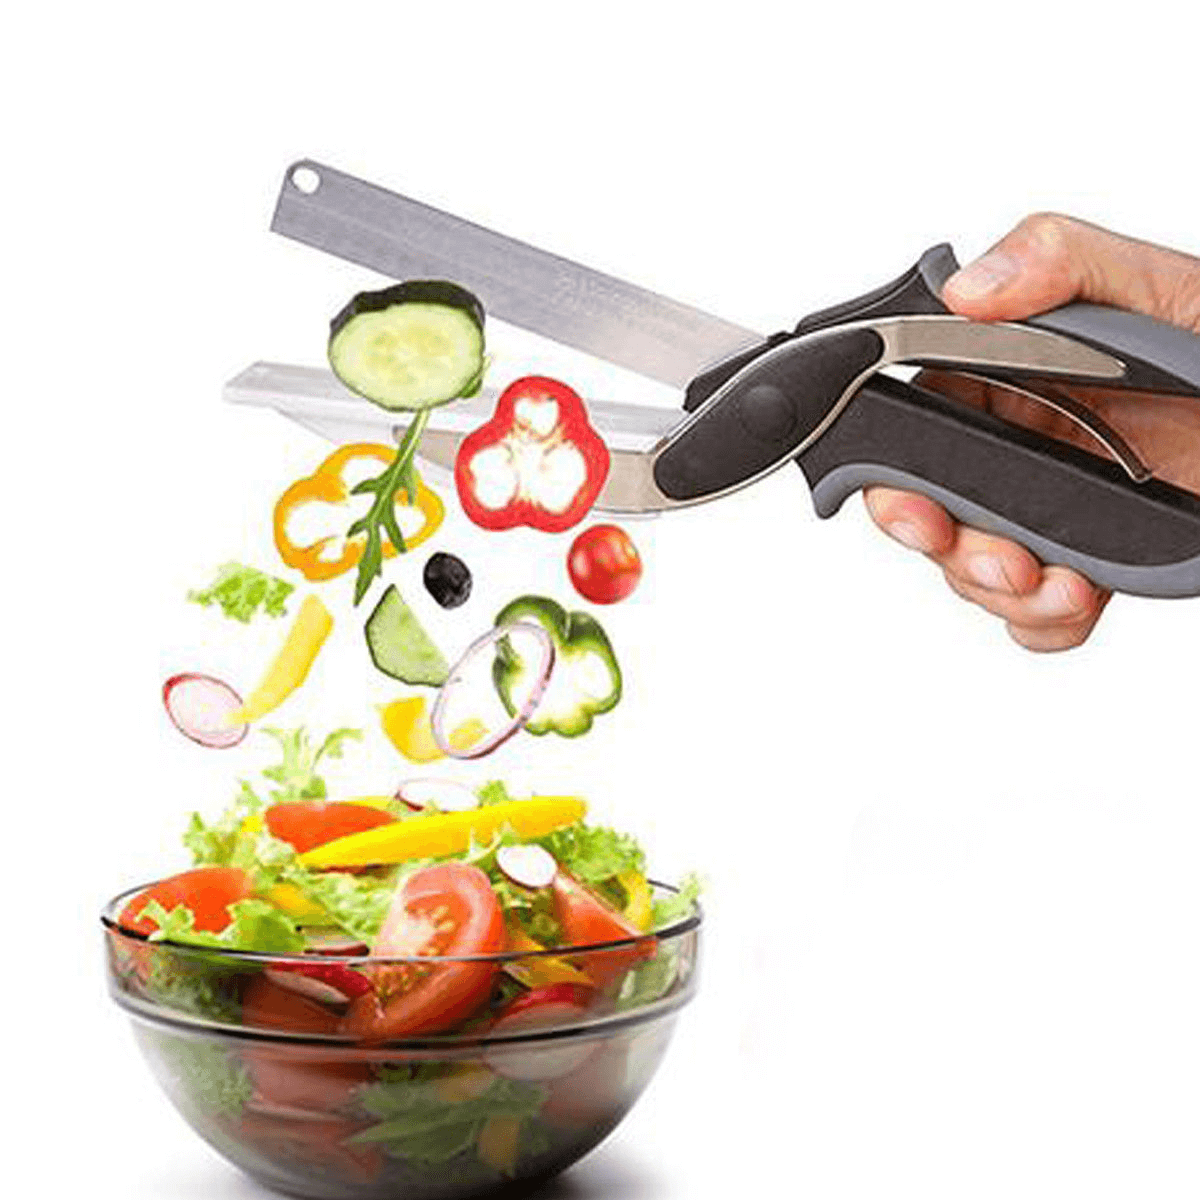 Clever-cutter-vegetable-cutter-scissors